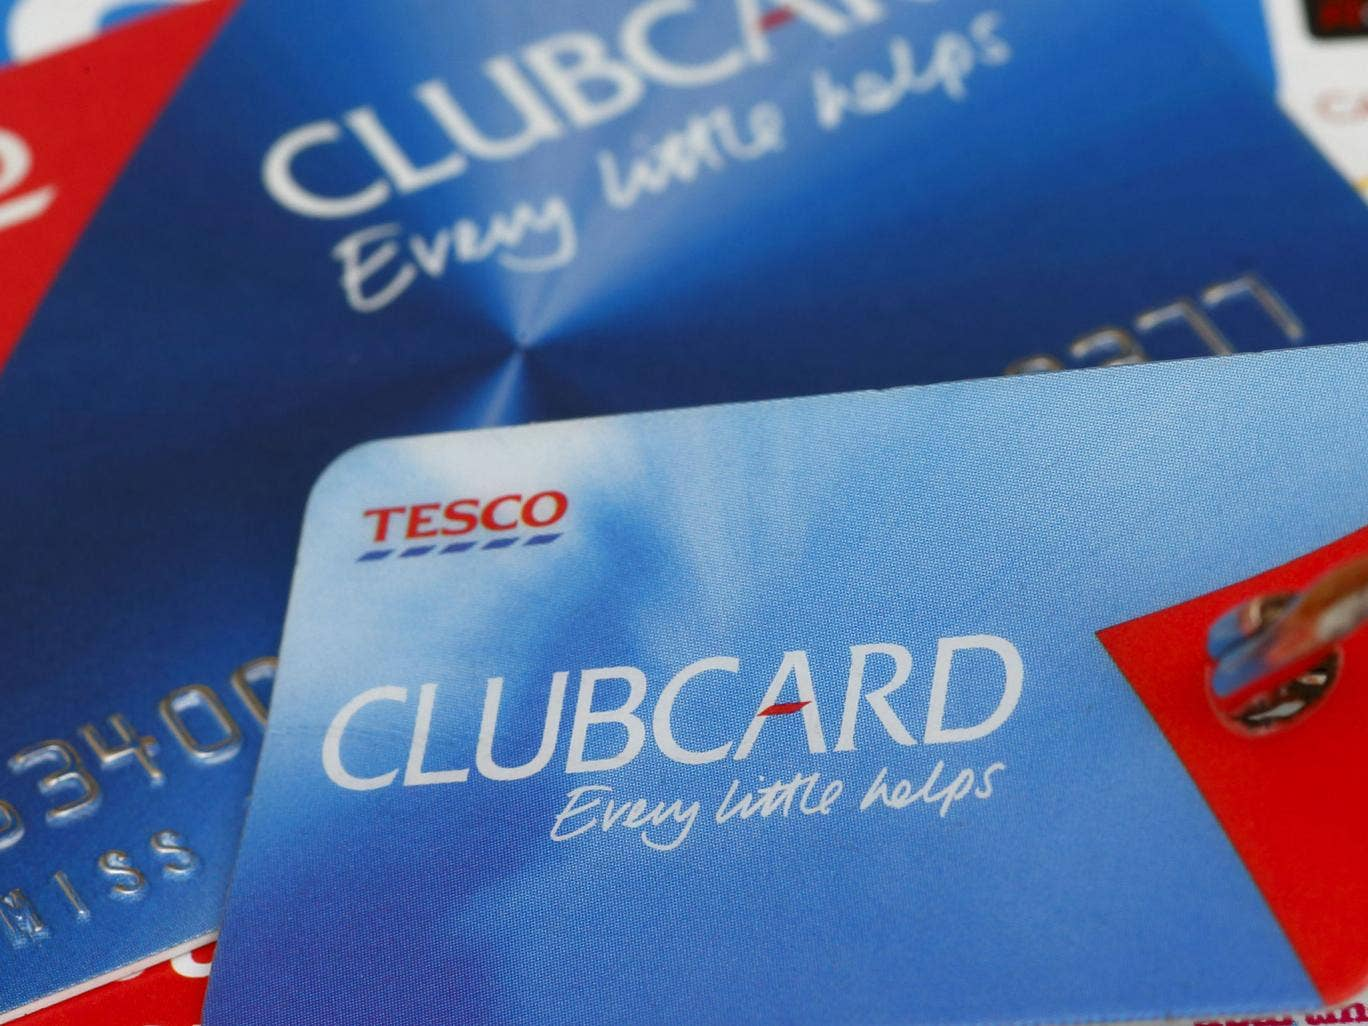 Tesco say that the missing points only affect around 30 of their 16 million Clubcard users